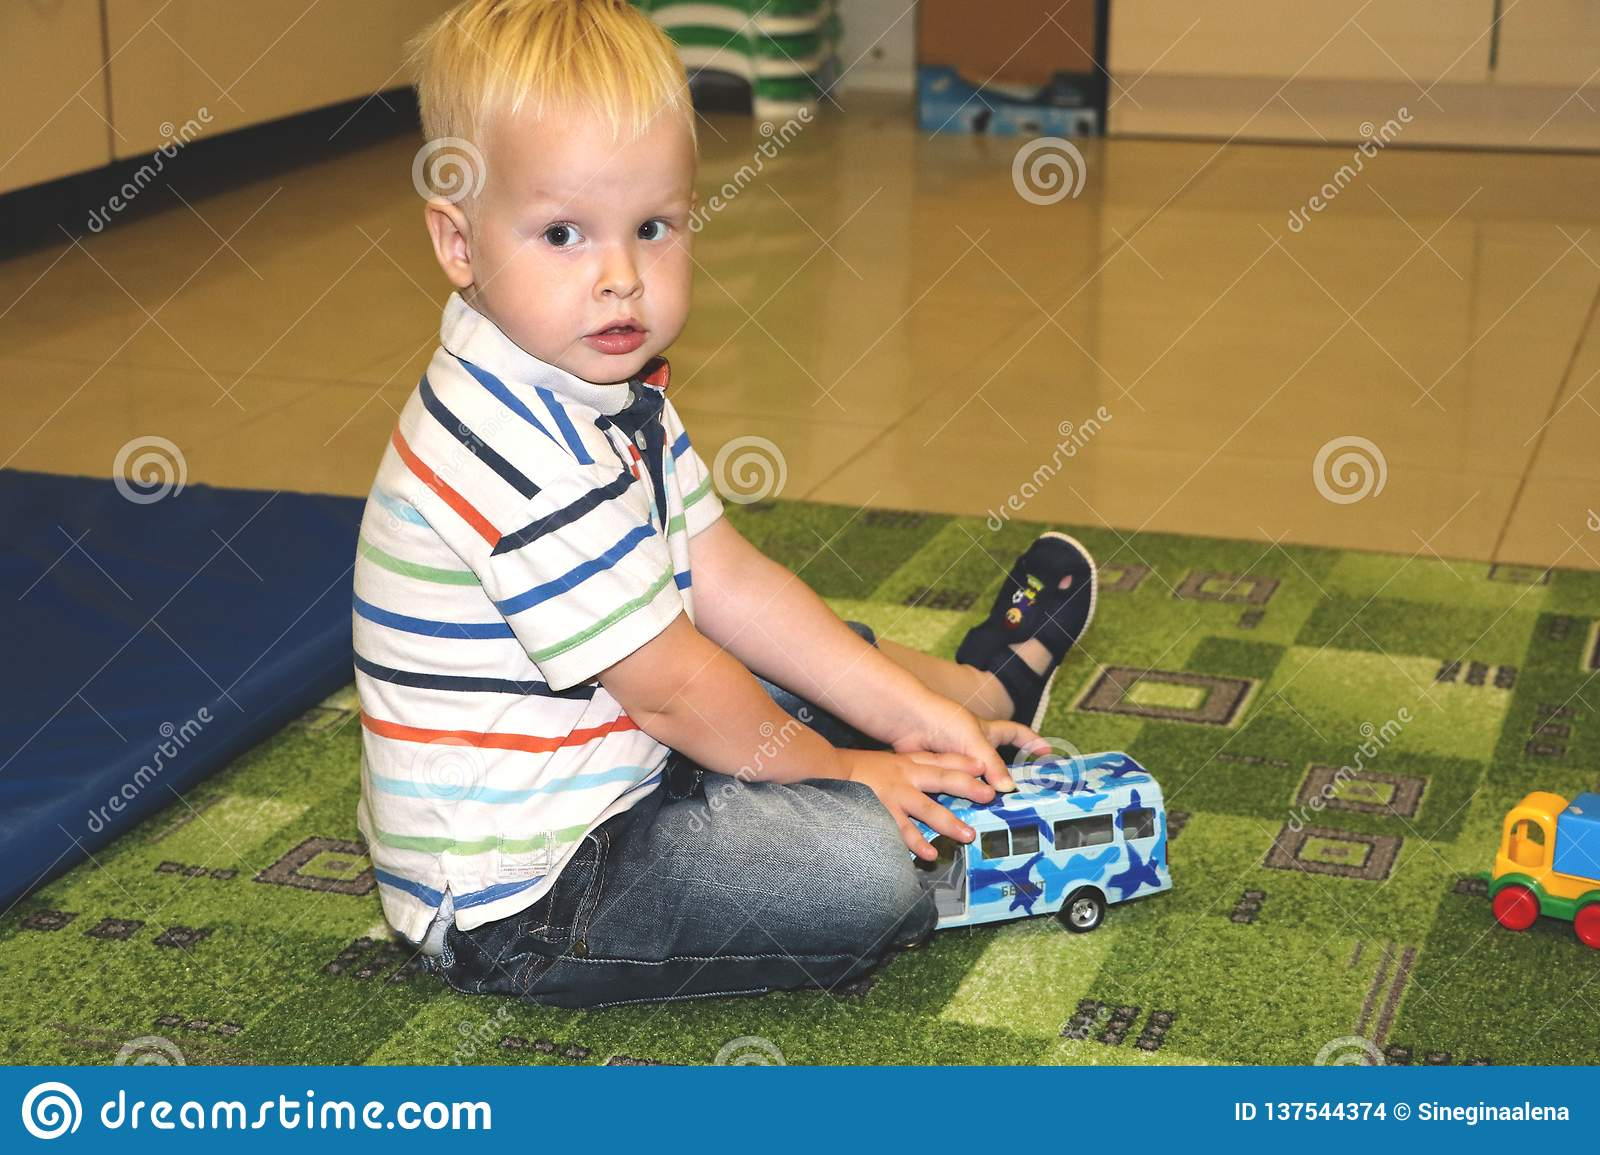 Two years child boy play with cars. Educational toys for preschool and kindergarten child, indoor playground, lifestyle concept